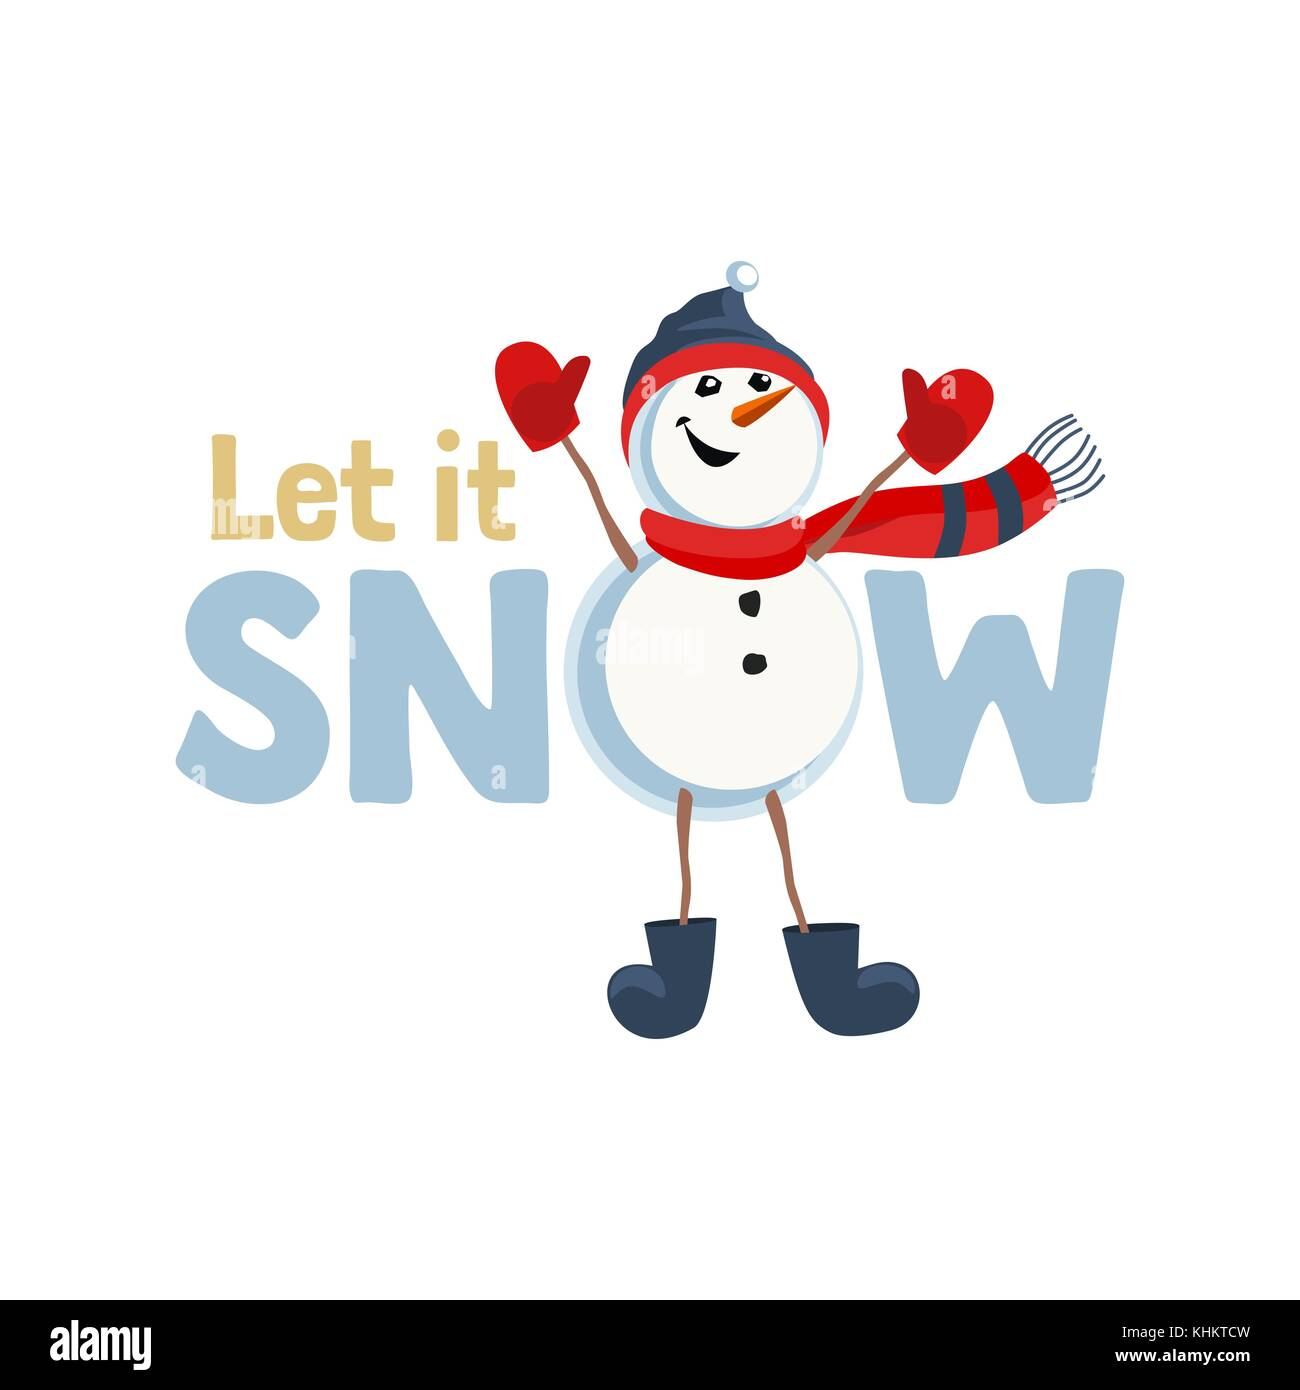 Holiday Wishes Let It Snow Fancy Letters Cartoon Playful Fun Stock